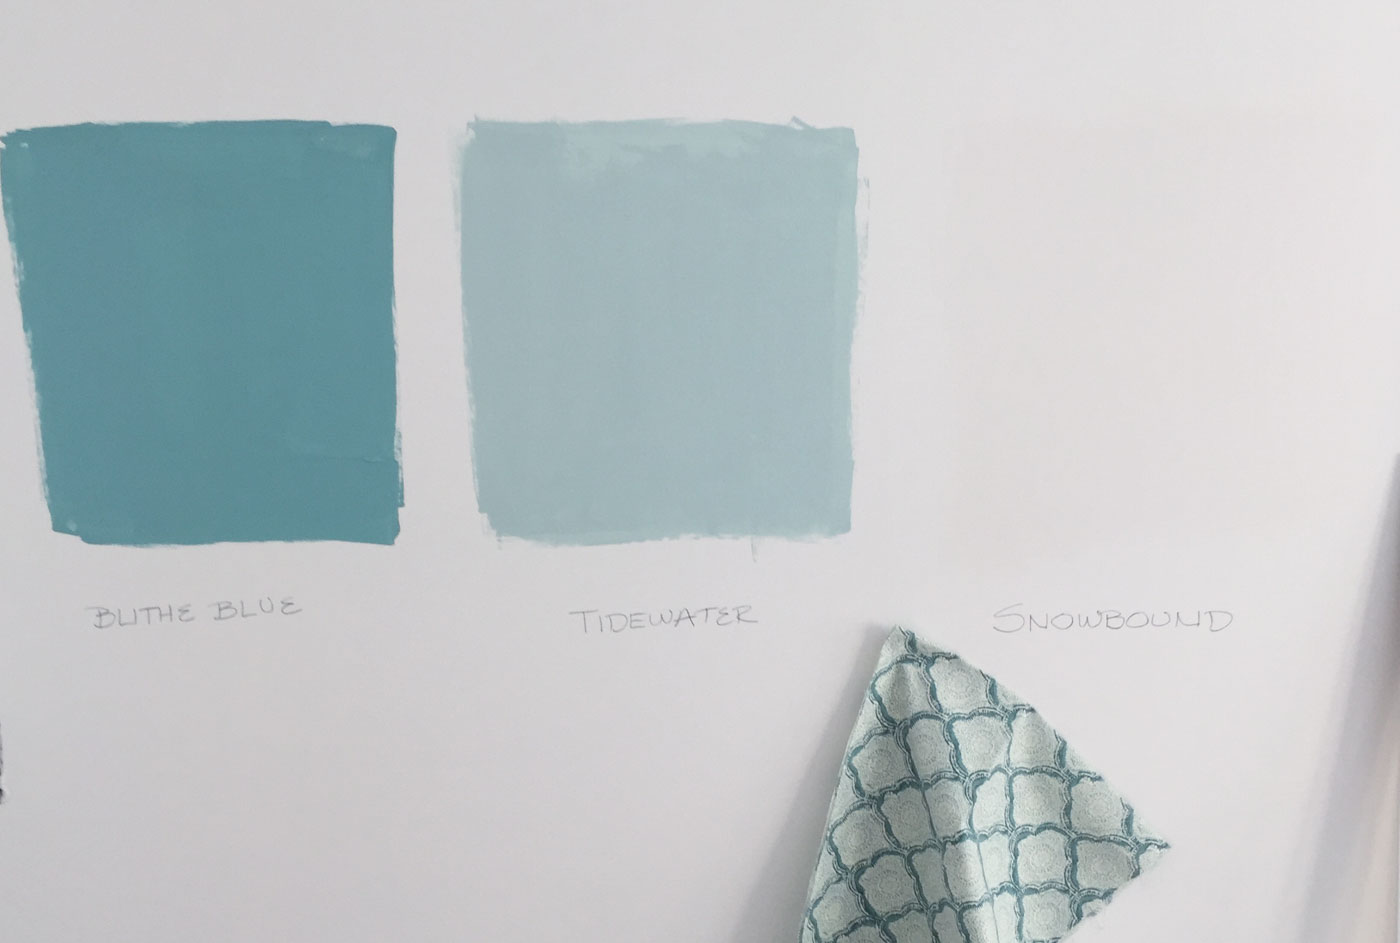 Sherwin Williams Blithe Blue Tidewater And Snowbound